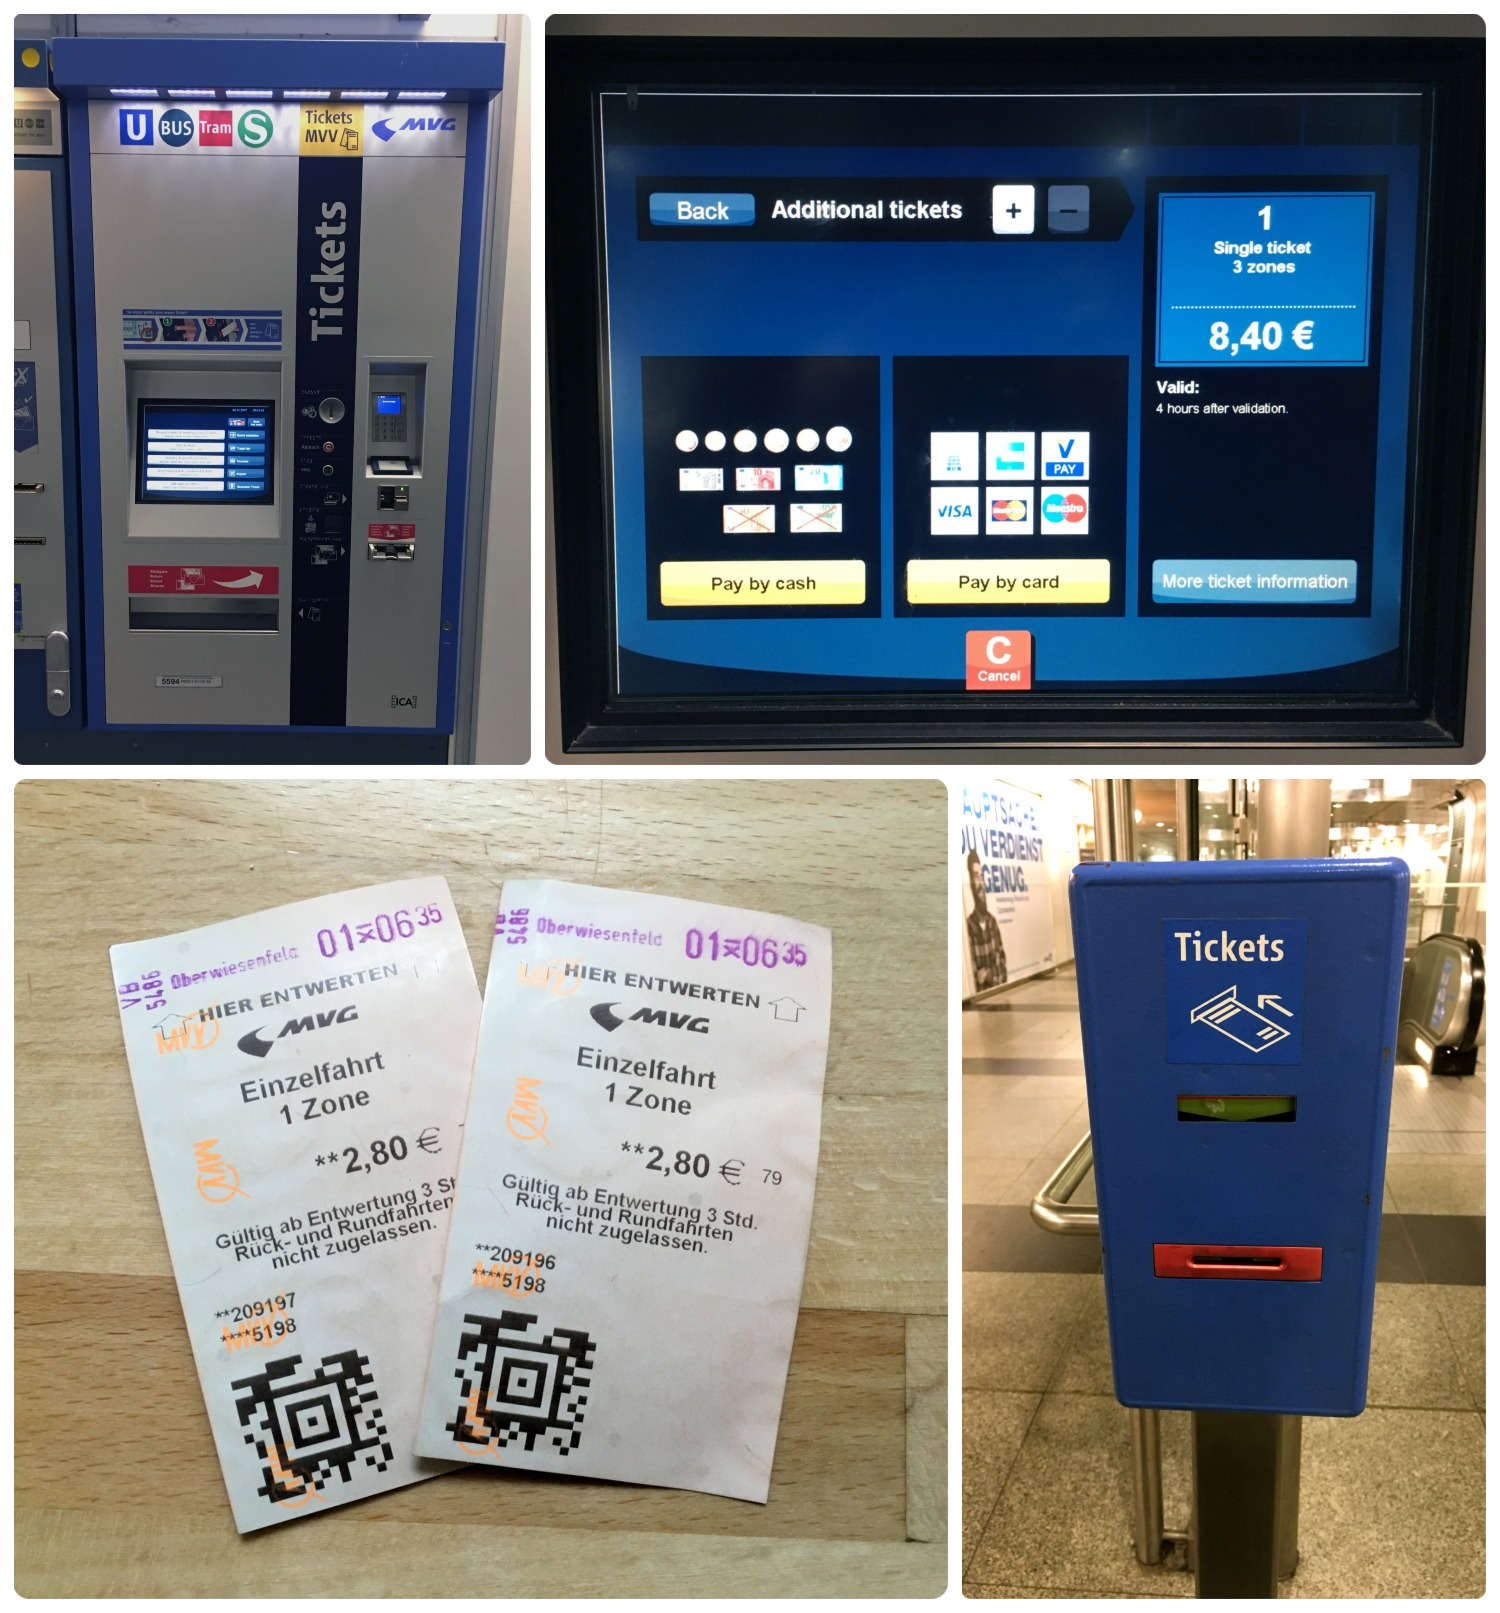 Munich, Germany public transportation. Clockwise (from the top left): Ticket machine for MVV transportation (U-Bahn, S-Bahn, bus, and tram), touchscreen interface to purchase tickets, machine to validate transportation tickets  before  boarding (typically found on train platforms and near ticket machines), our public transportation tickets valid for one zone.